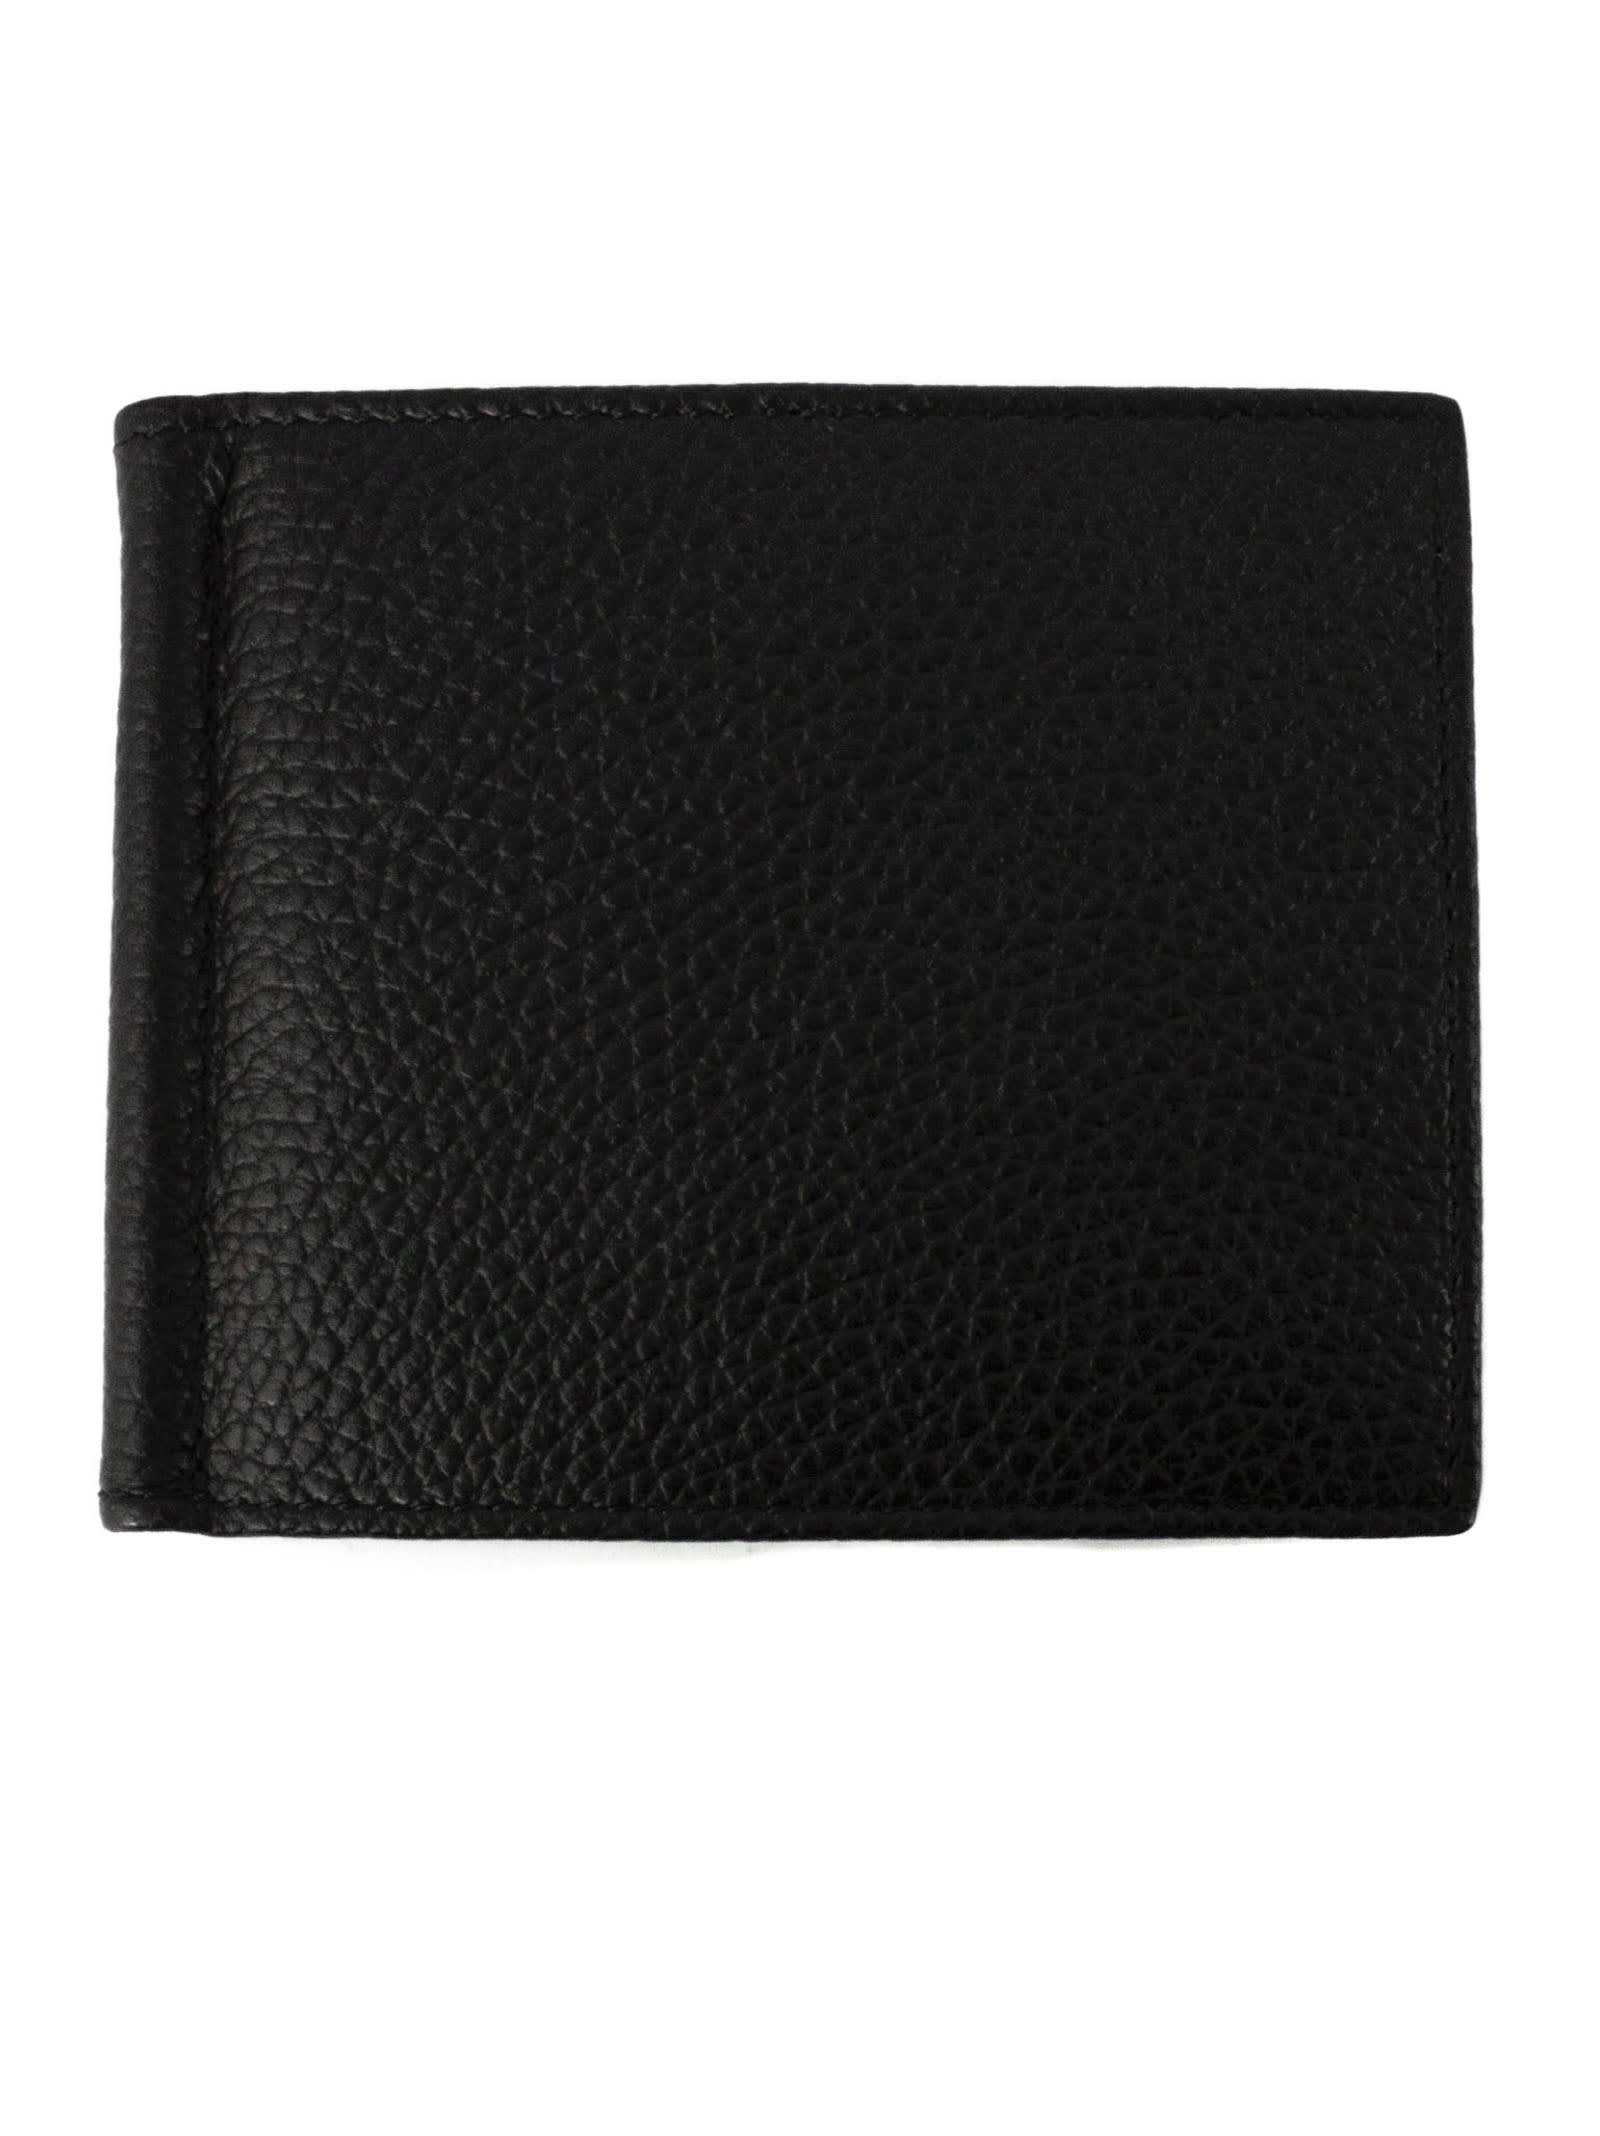 Orciani Black Leather Wallet